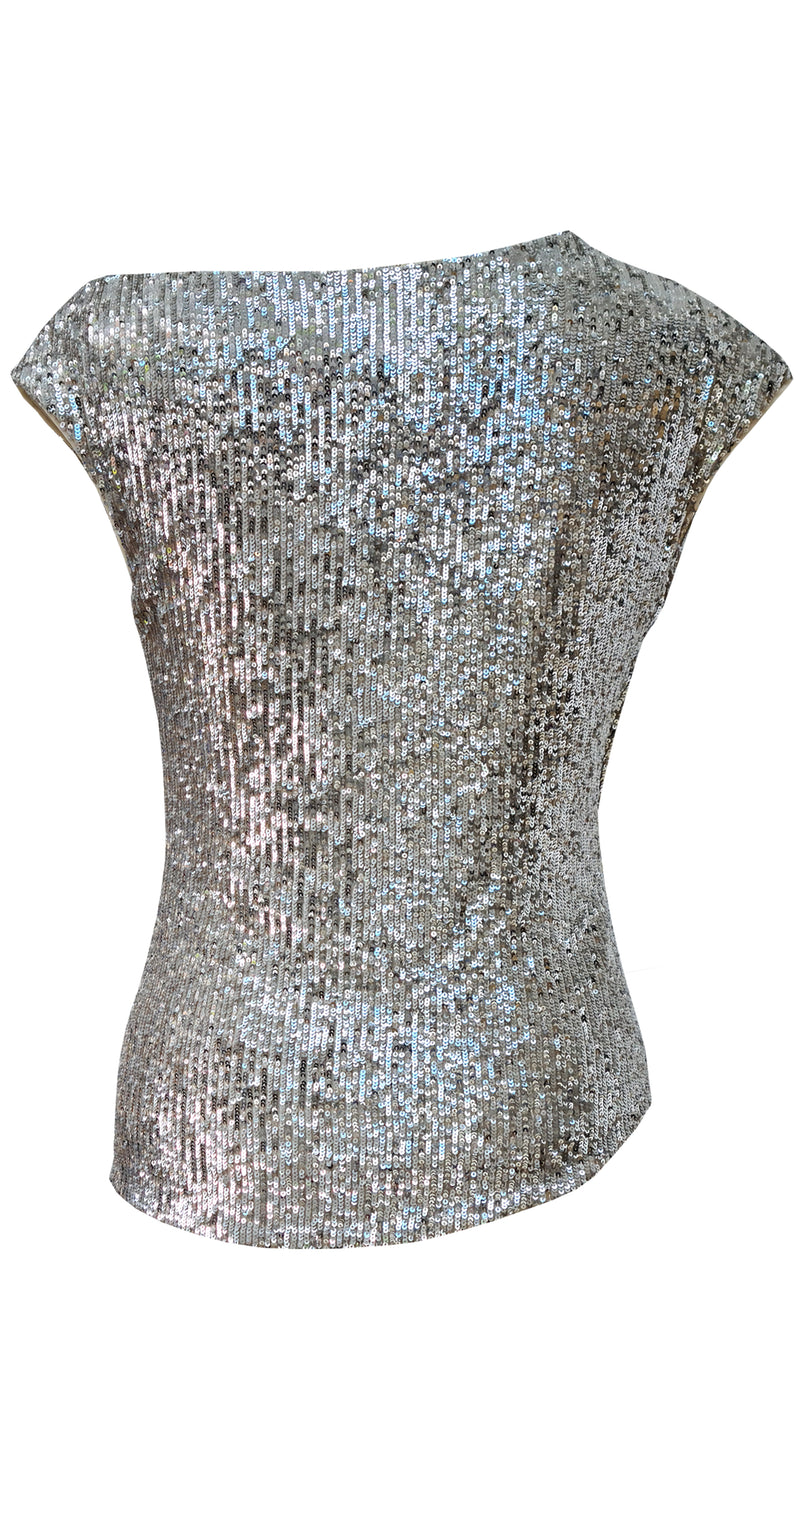 Gold Rush Top TOP342 Star Light Sequins